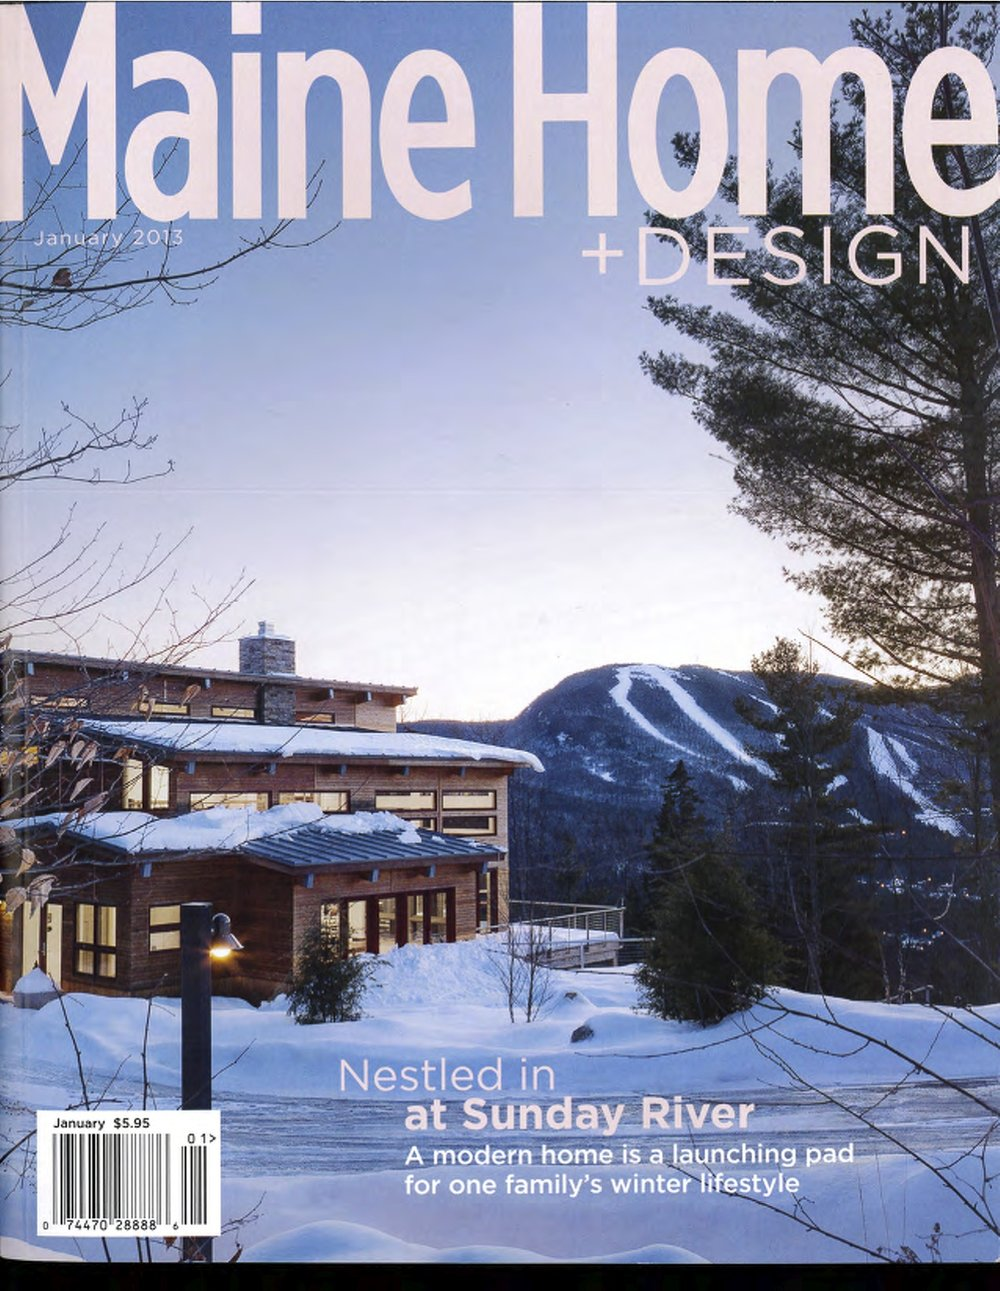 Maine Home & Design — BGD ltd on maine coastal homes, beautiful homes and design, maine interior design, maine log homes, maine agriculture, charleston home and design, decorating and design, maine animals, florida home and design, california home and design, maine waterfront mansion, colorful maine cottage design, maine jacuzzi and fireplace, new england home and design, maine coast kitchen design, maine houses, luxe interiors and design,